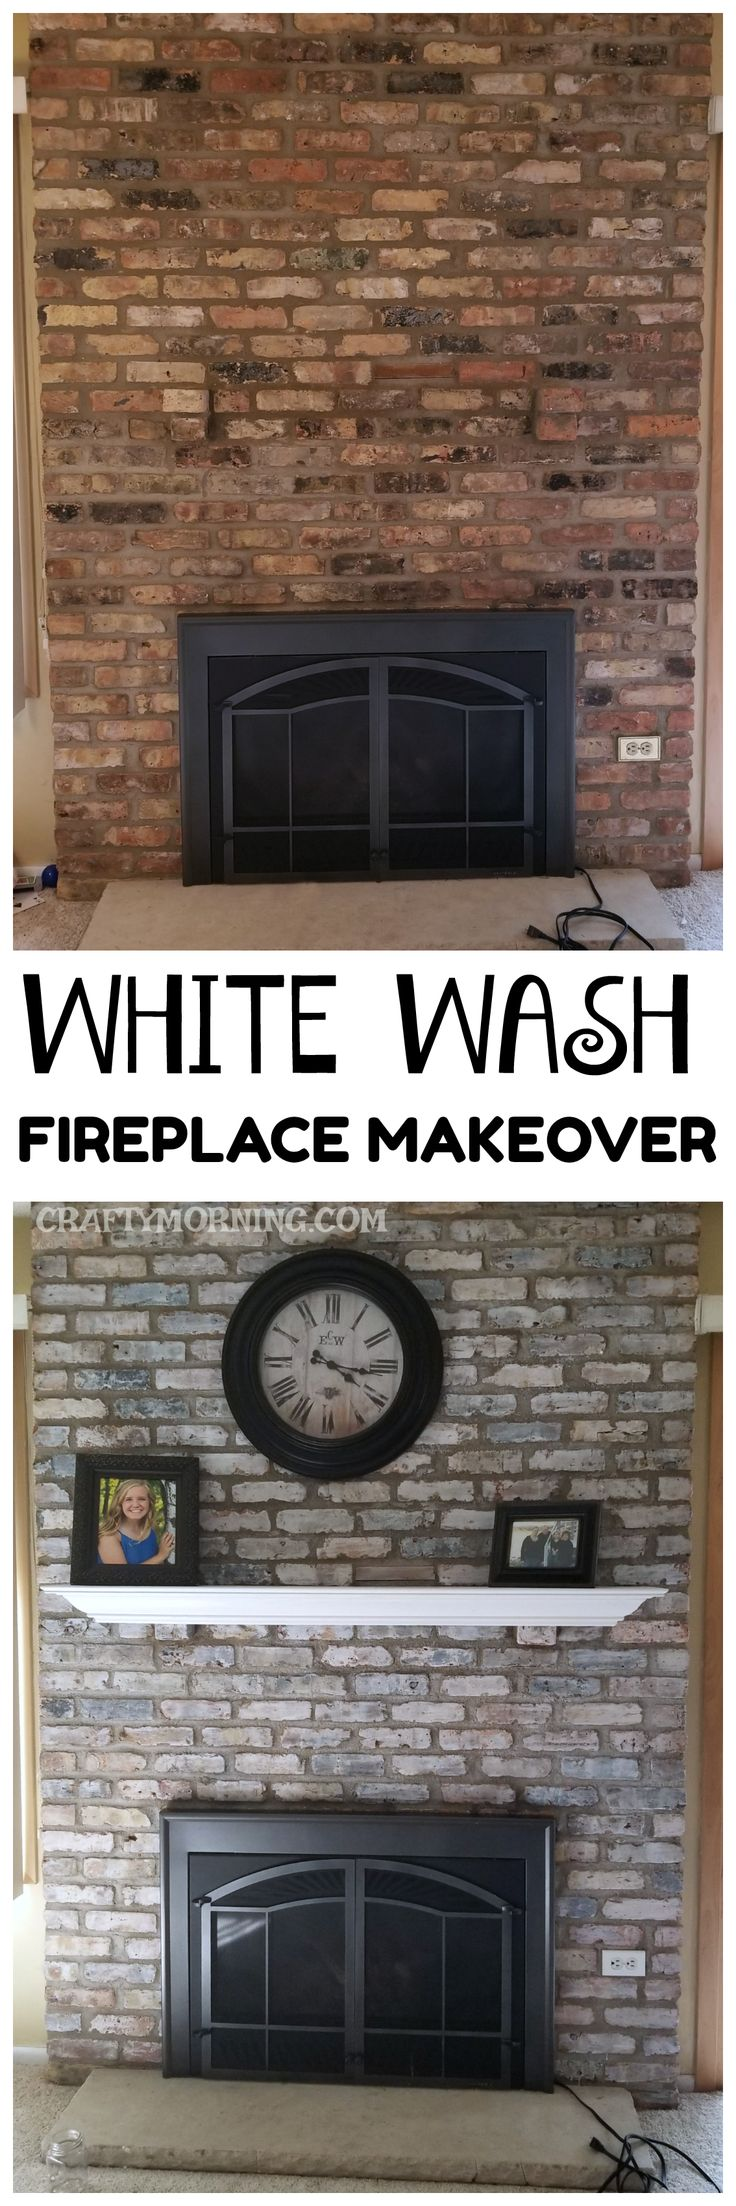 How to white wash a brick fireplace - beautiful makeover on a budget that cost $11!!!